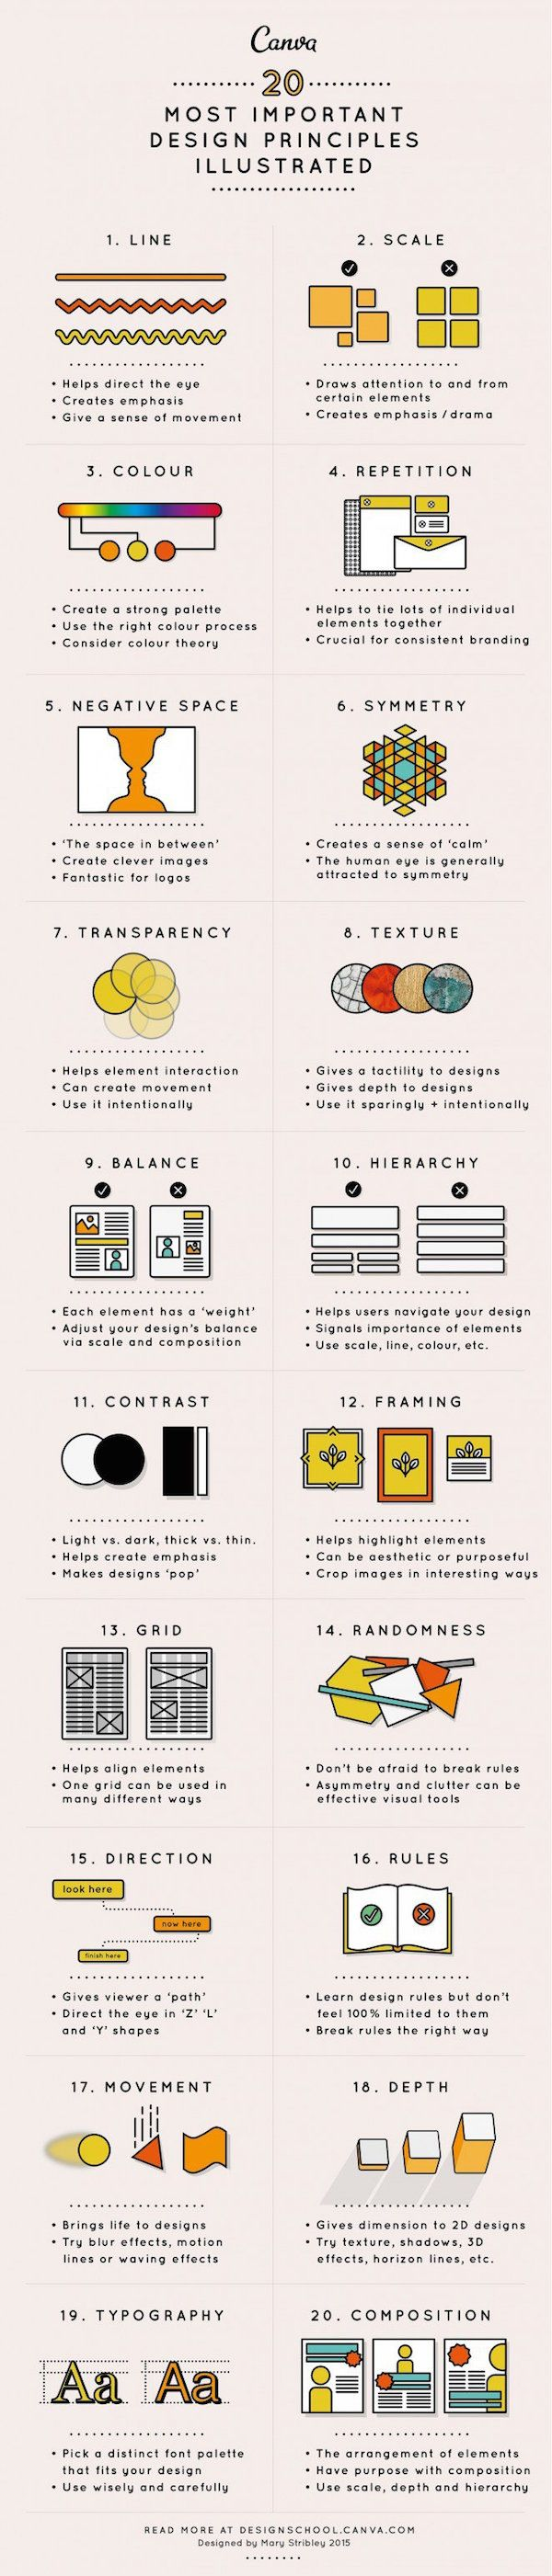 Graphic Designers: Cheat Sheets That Simplify Design Elements, Print Terms, More - DesignTAXI.com